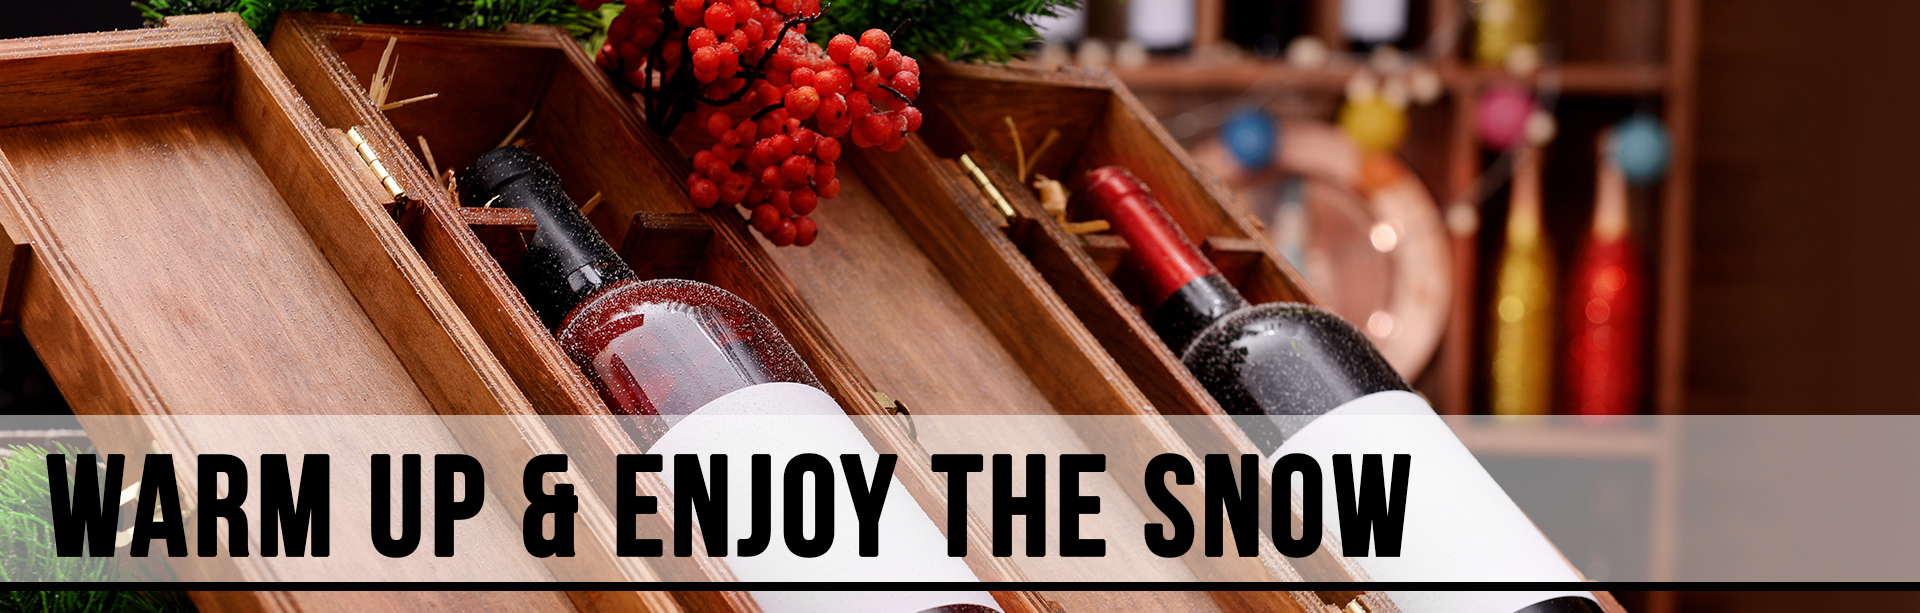 warm up and enjoy the snow